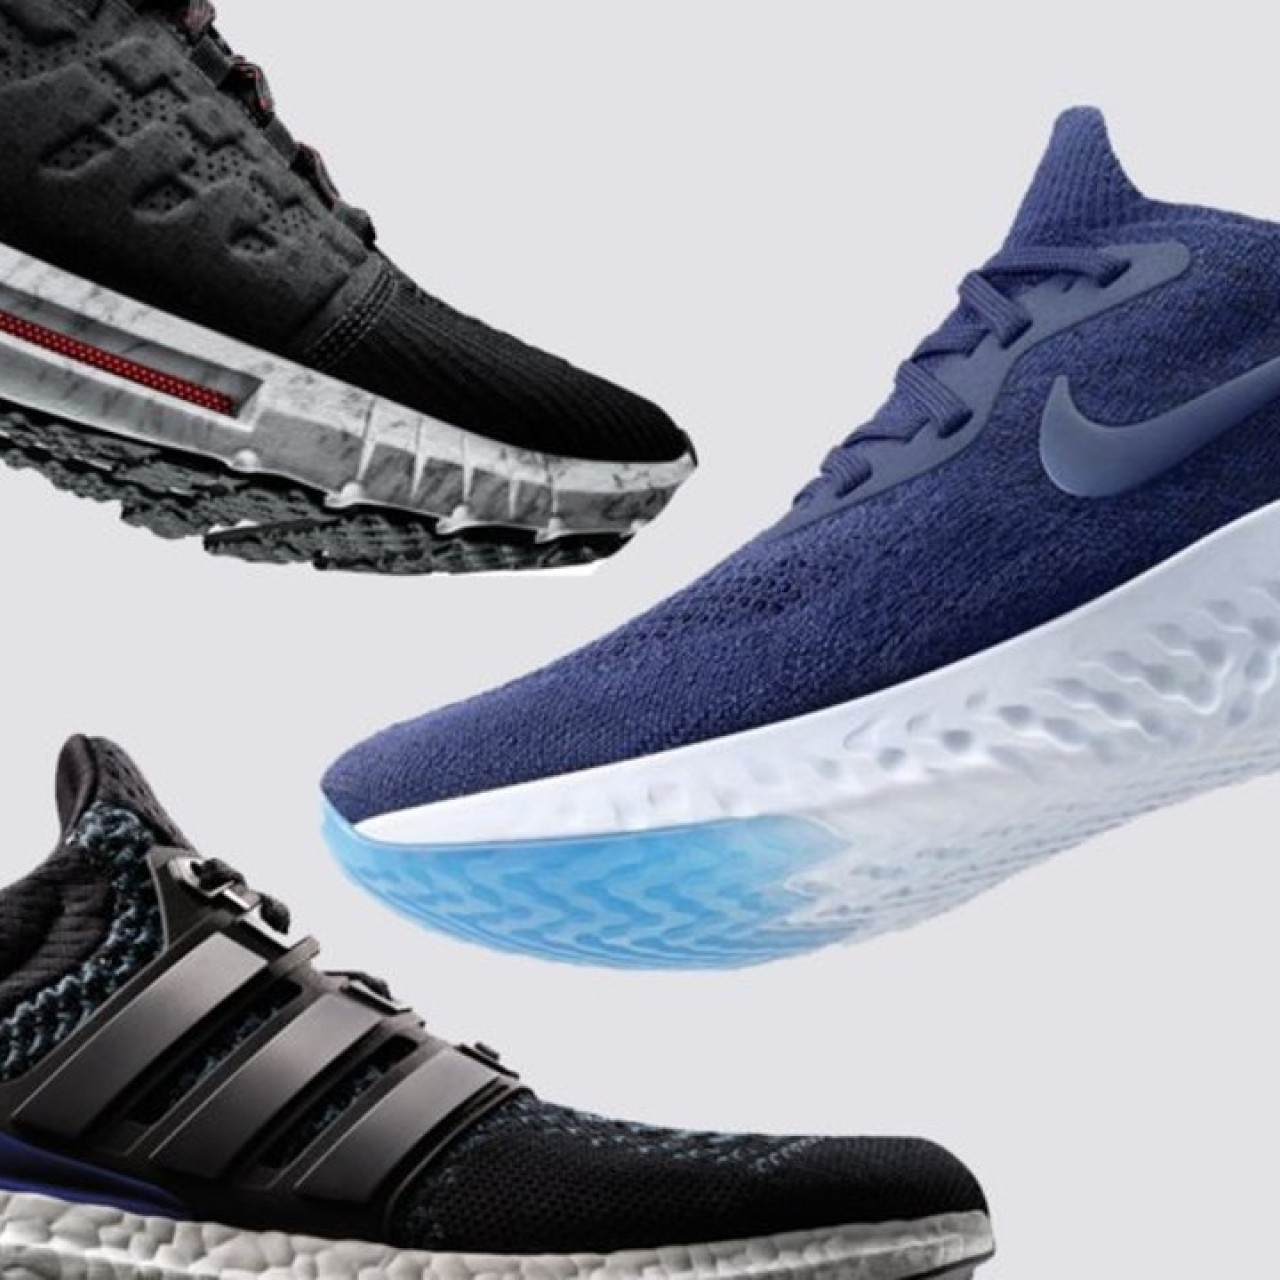 90b1ce40bb640 First Adidas, now Nike and Under Armour: foam soles are next 'big ...